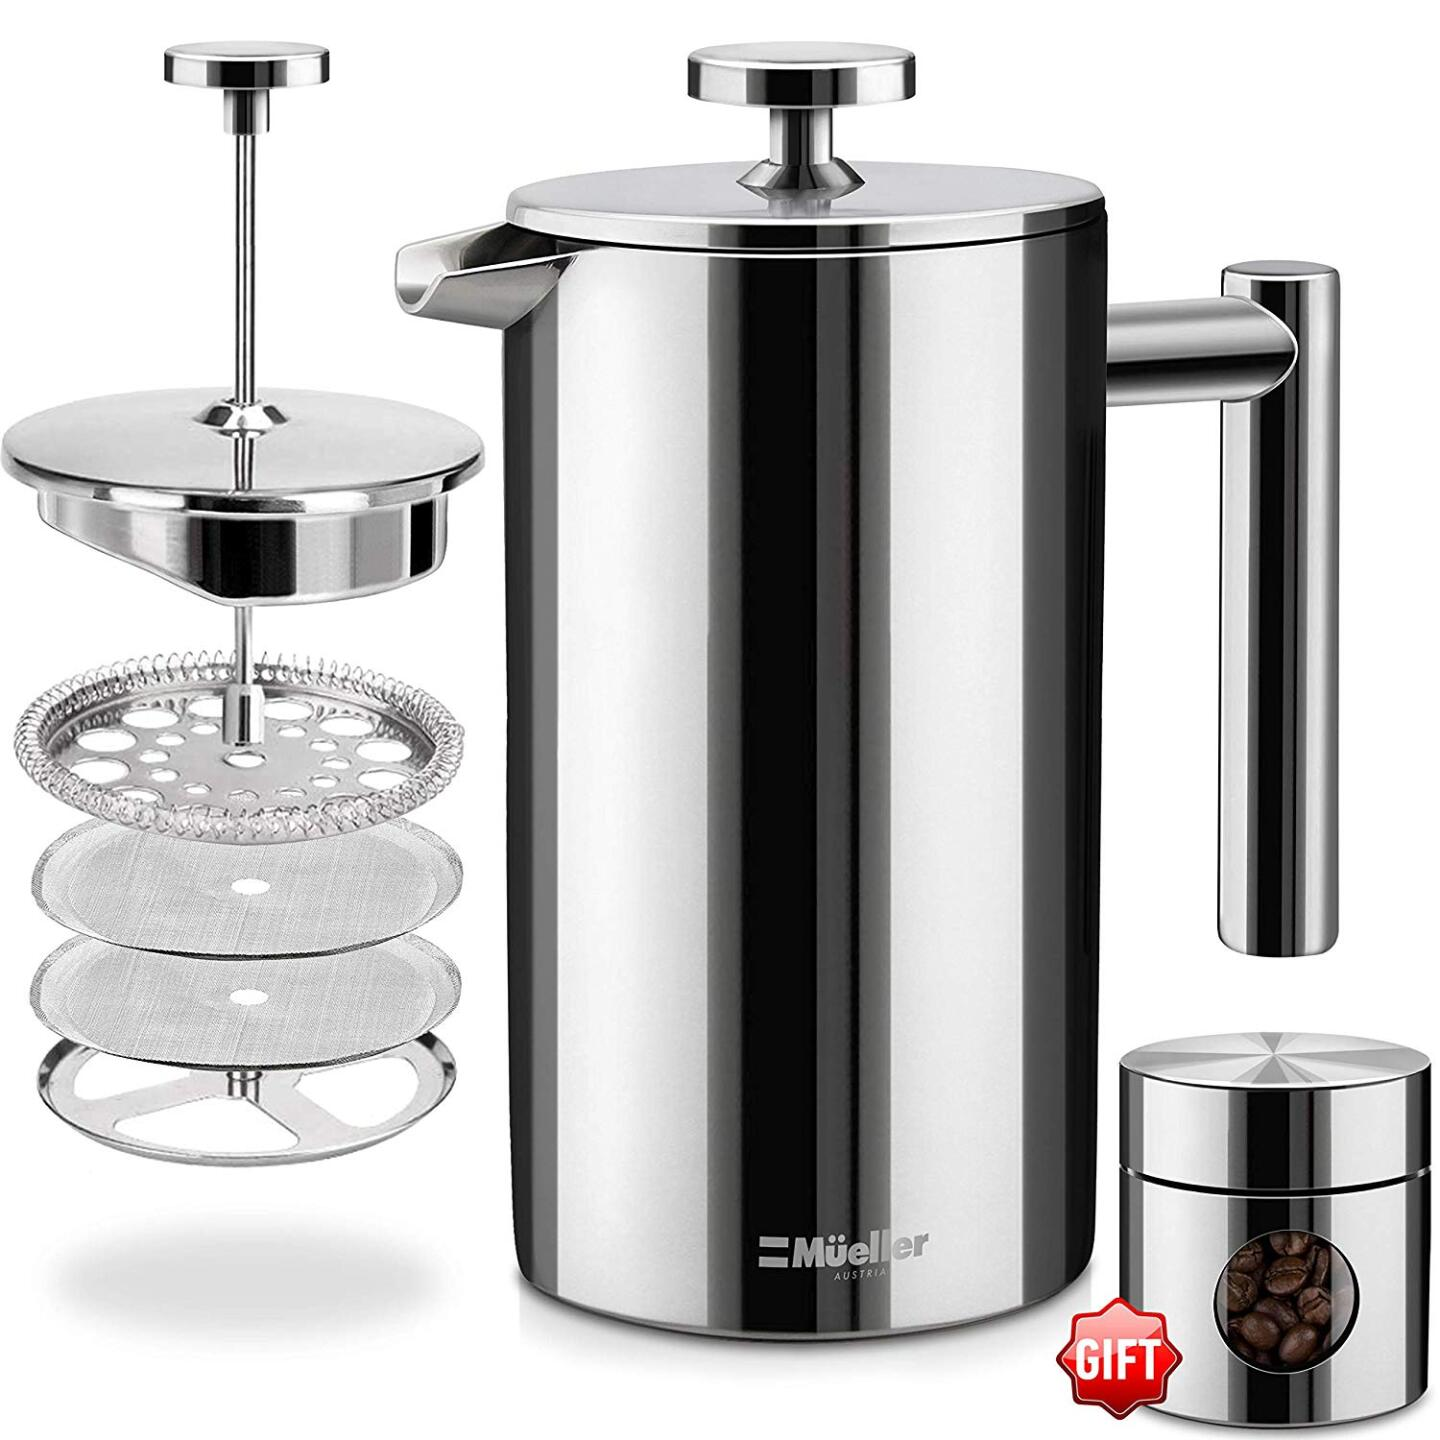 French Press Coffee Maker.jpg